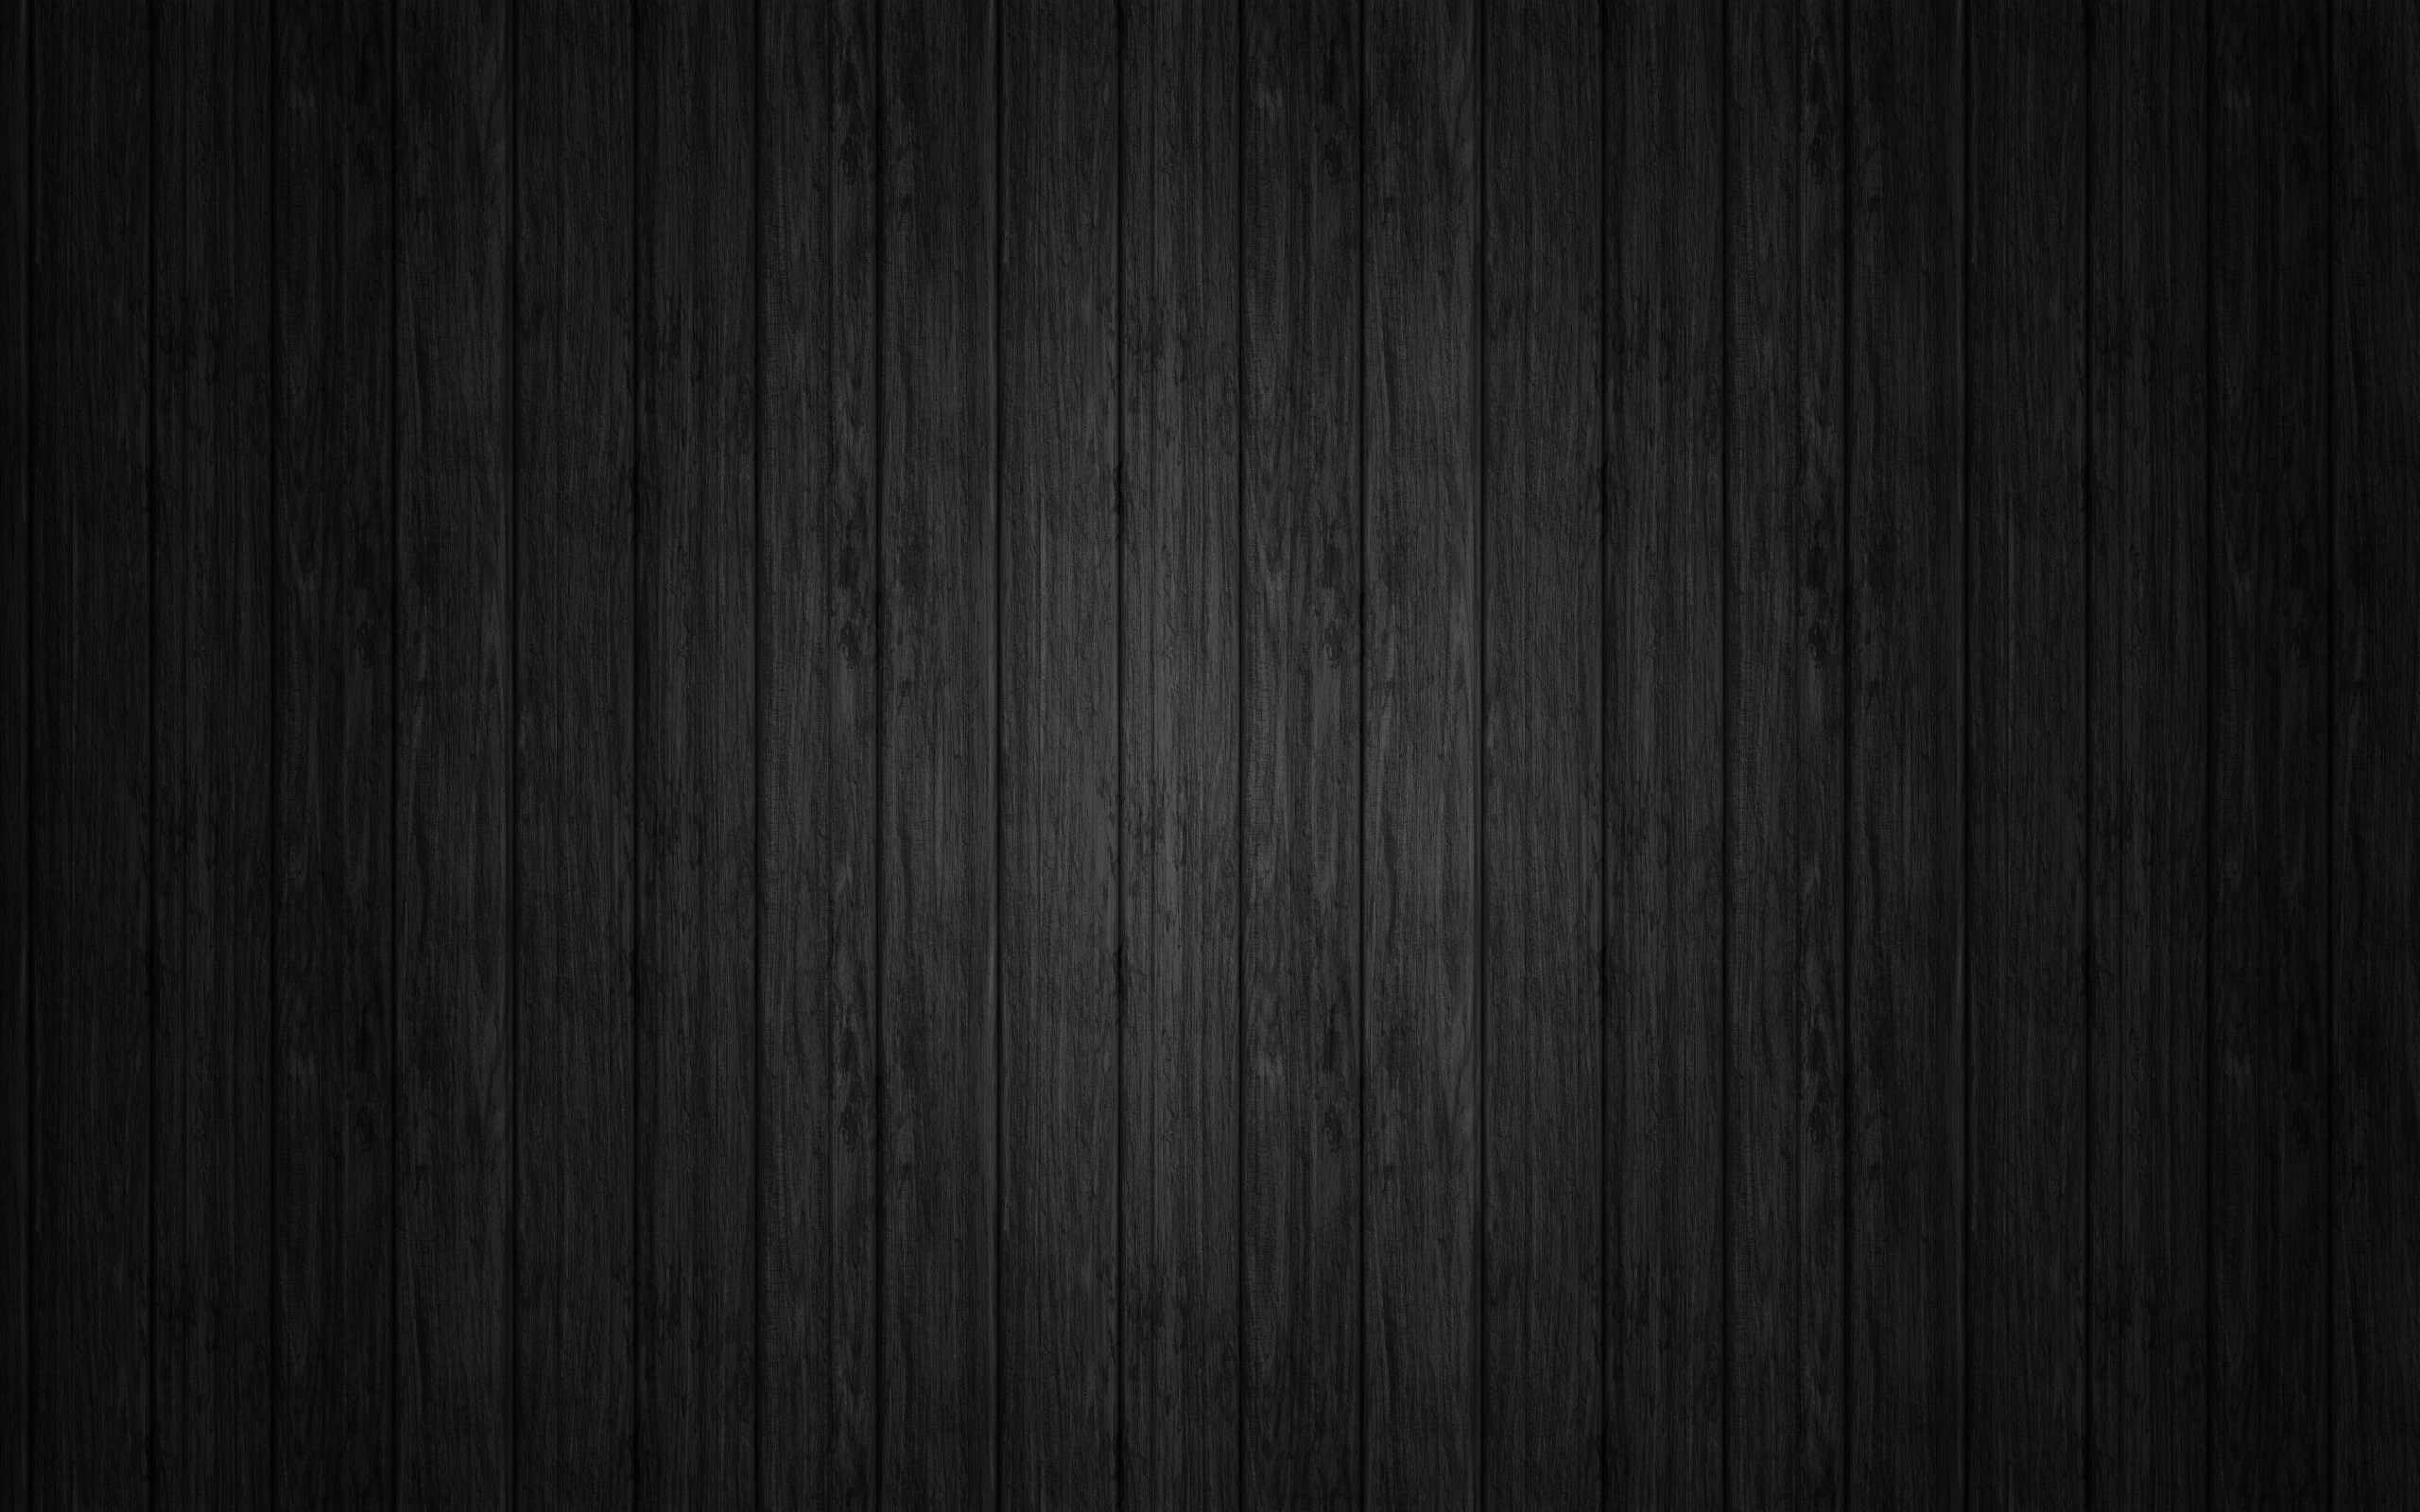 Black floor | Wood Black Floor Wallszone Wallpaper with 2560x1600 Resolution | Blood on the dance floor bedroom 1 | Pinterest